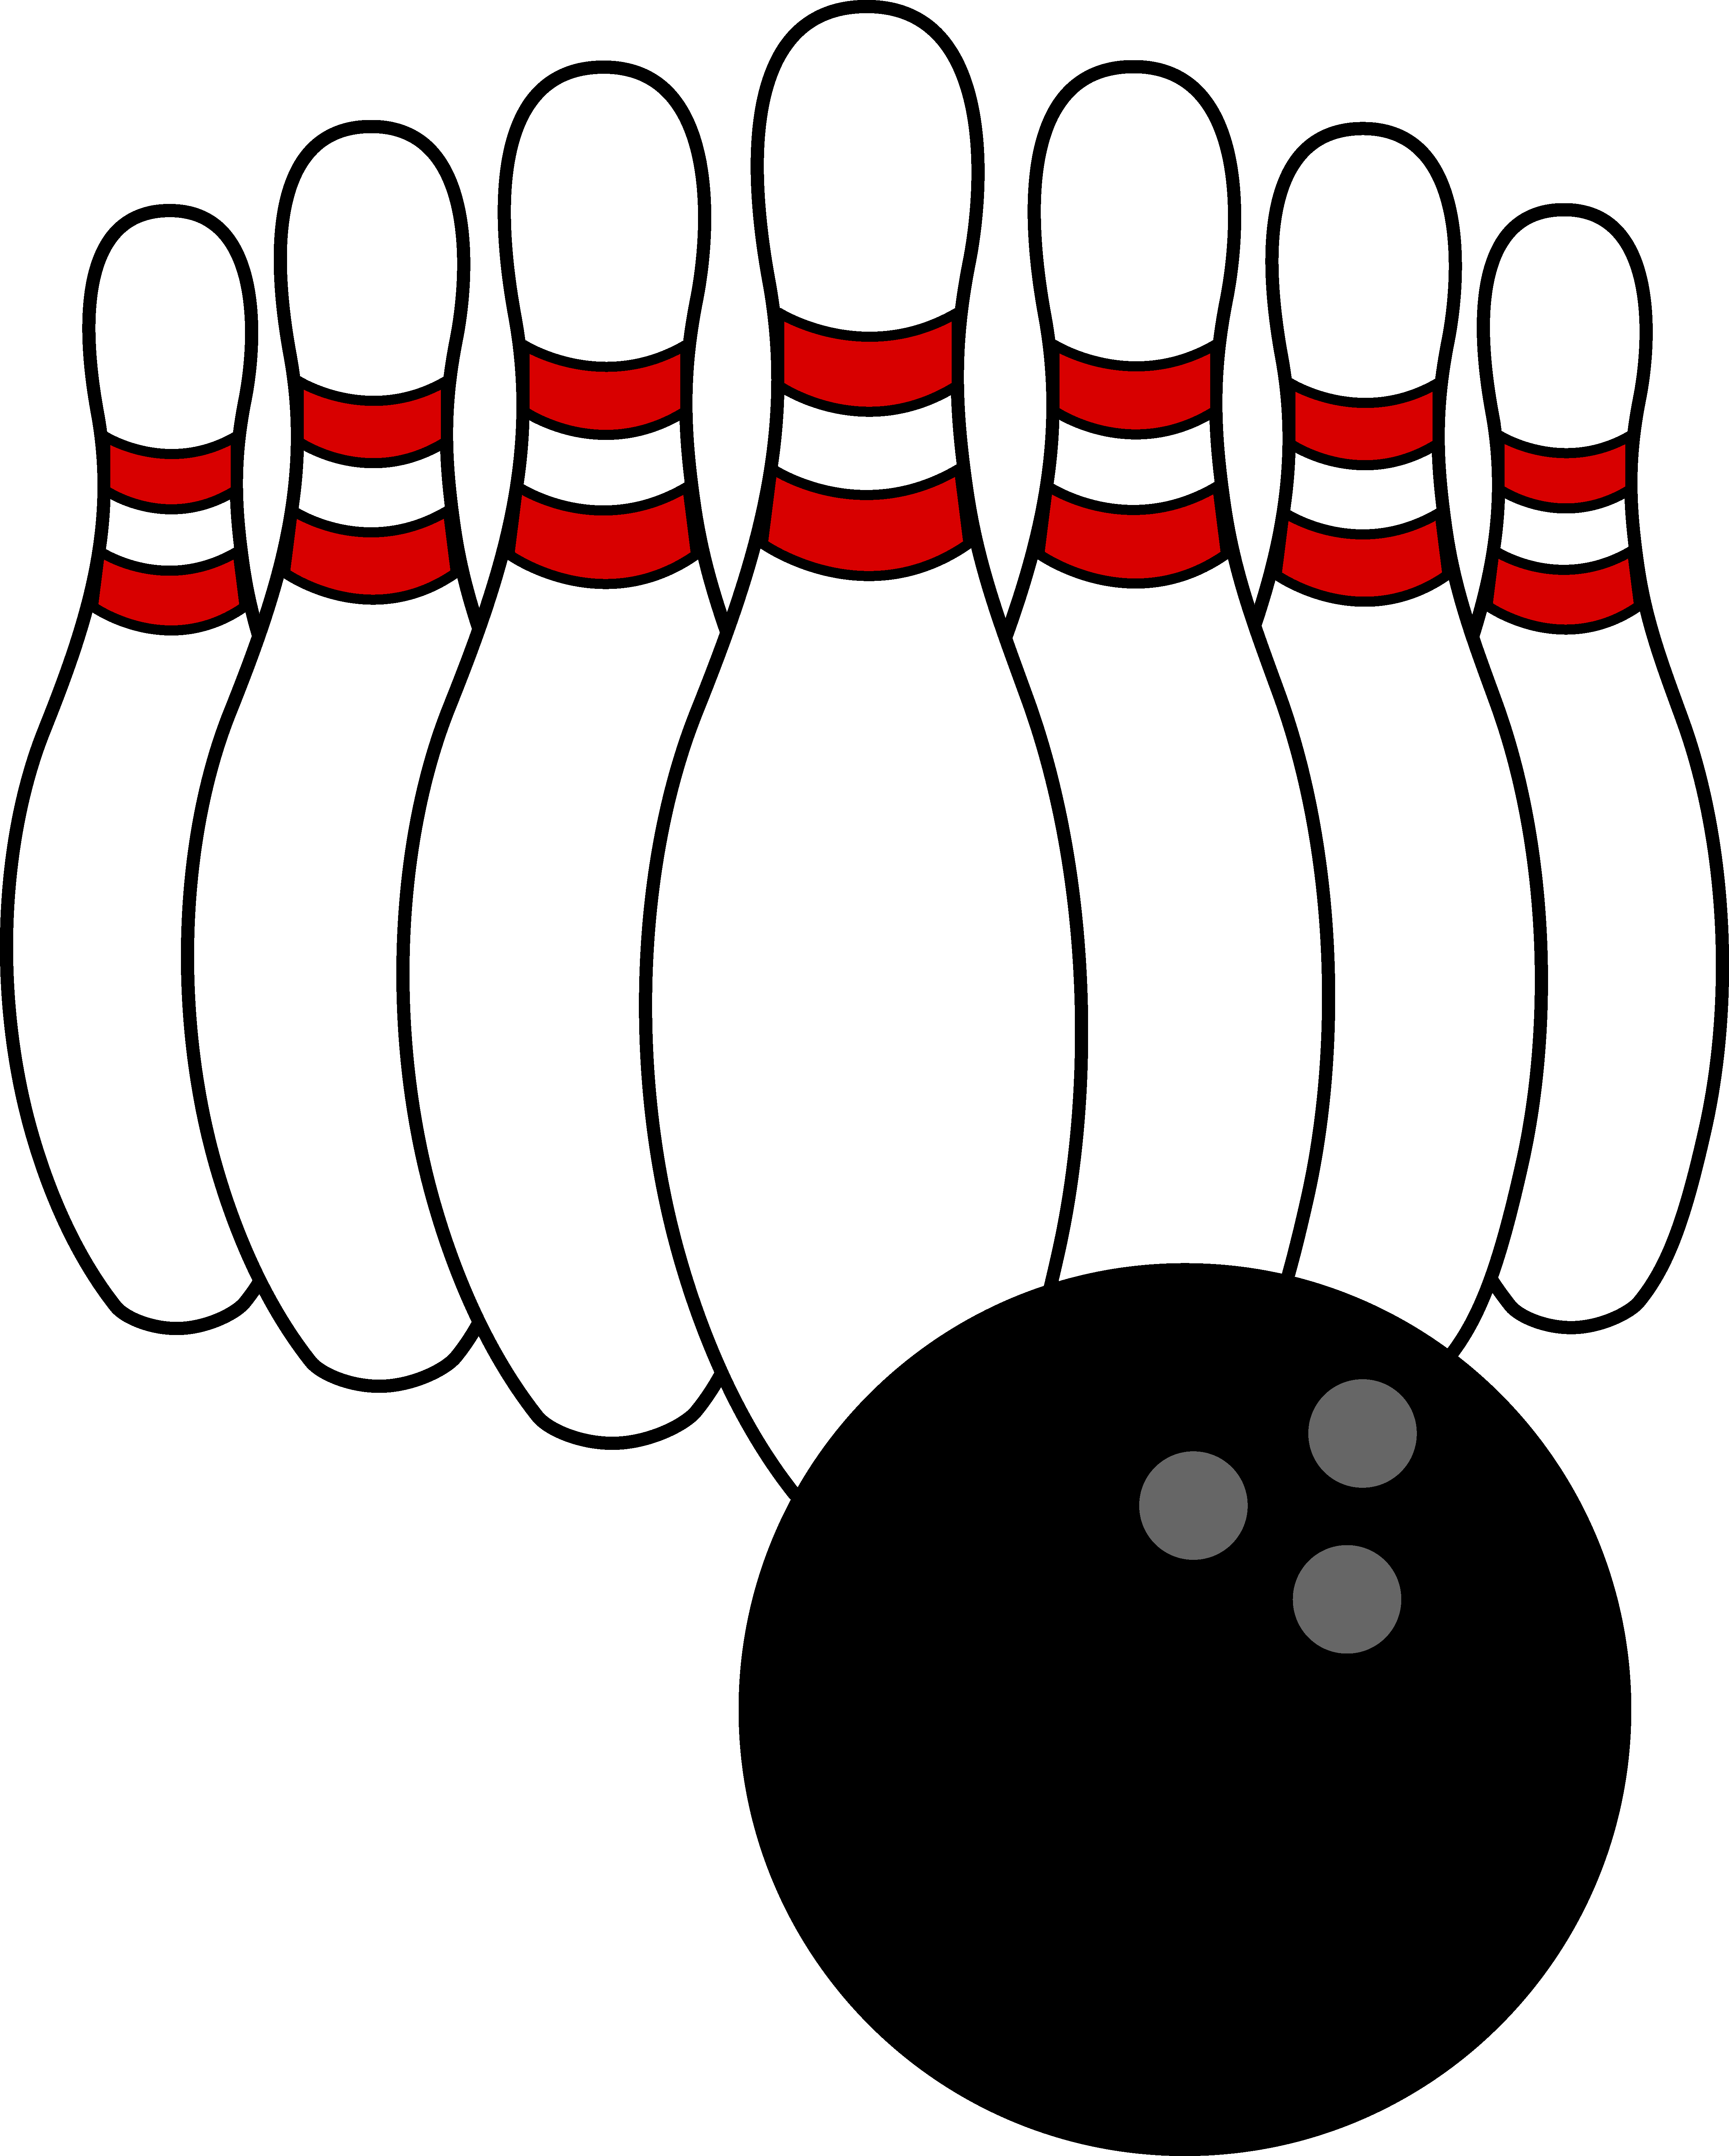 Pizza clipart bowling. Clip art ball and